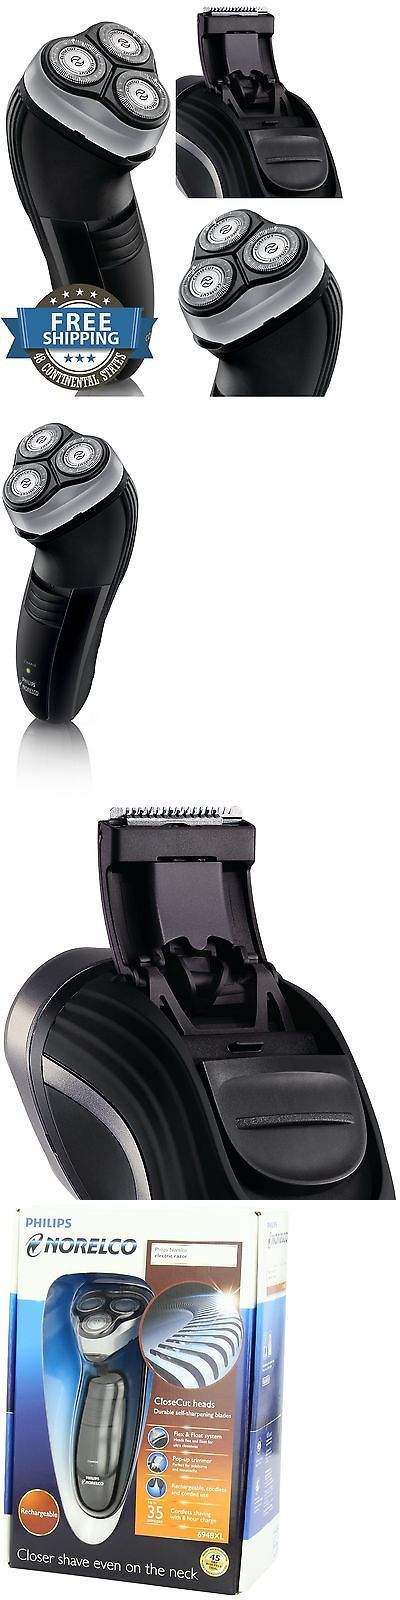 Mens Shavers: Philips Norelco Mens Cordless Electric Shaver Close Shave Beard Razor BUY IT NOW ONLY: $48.85